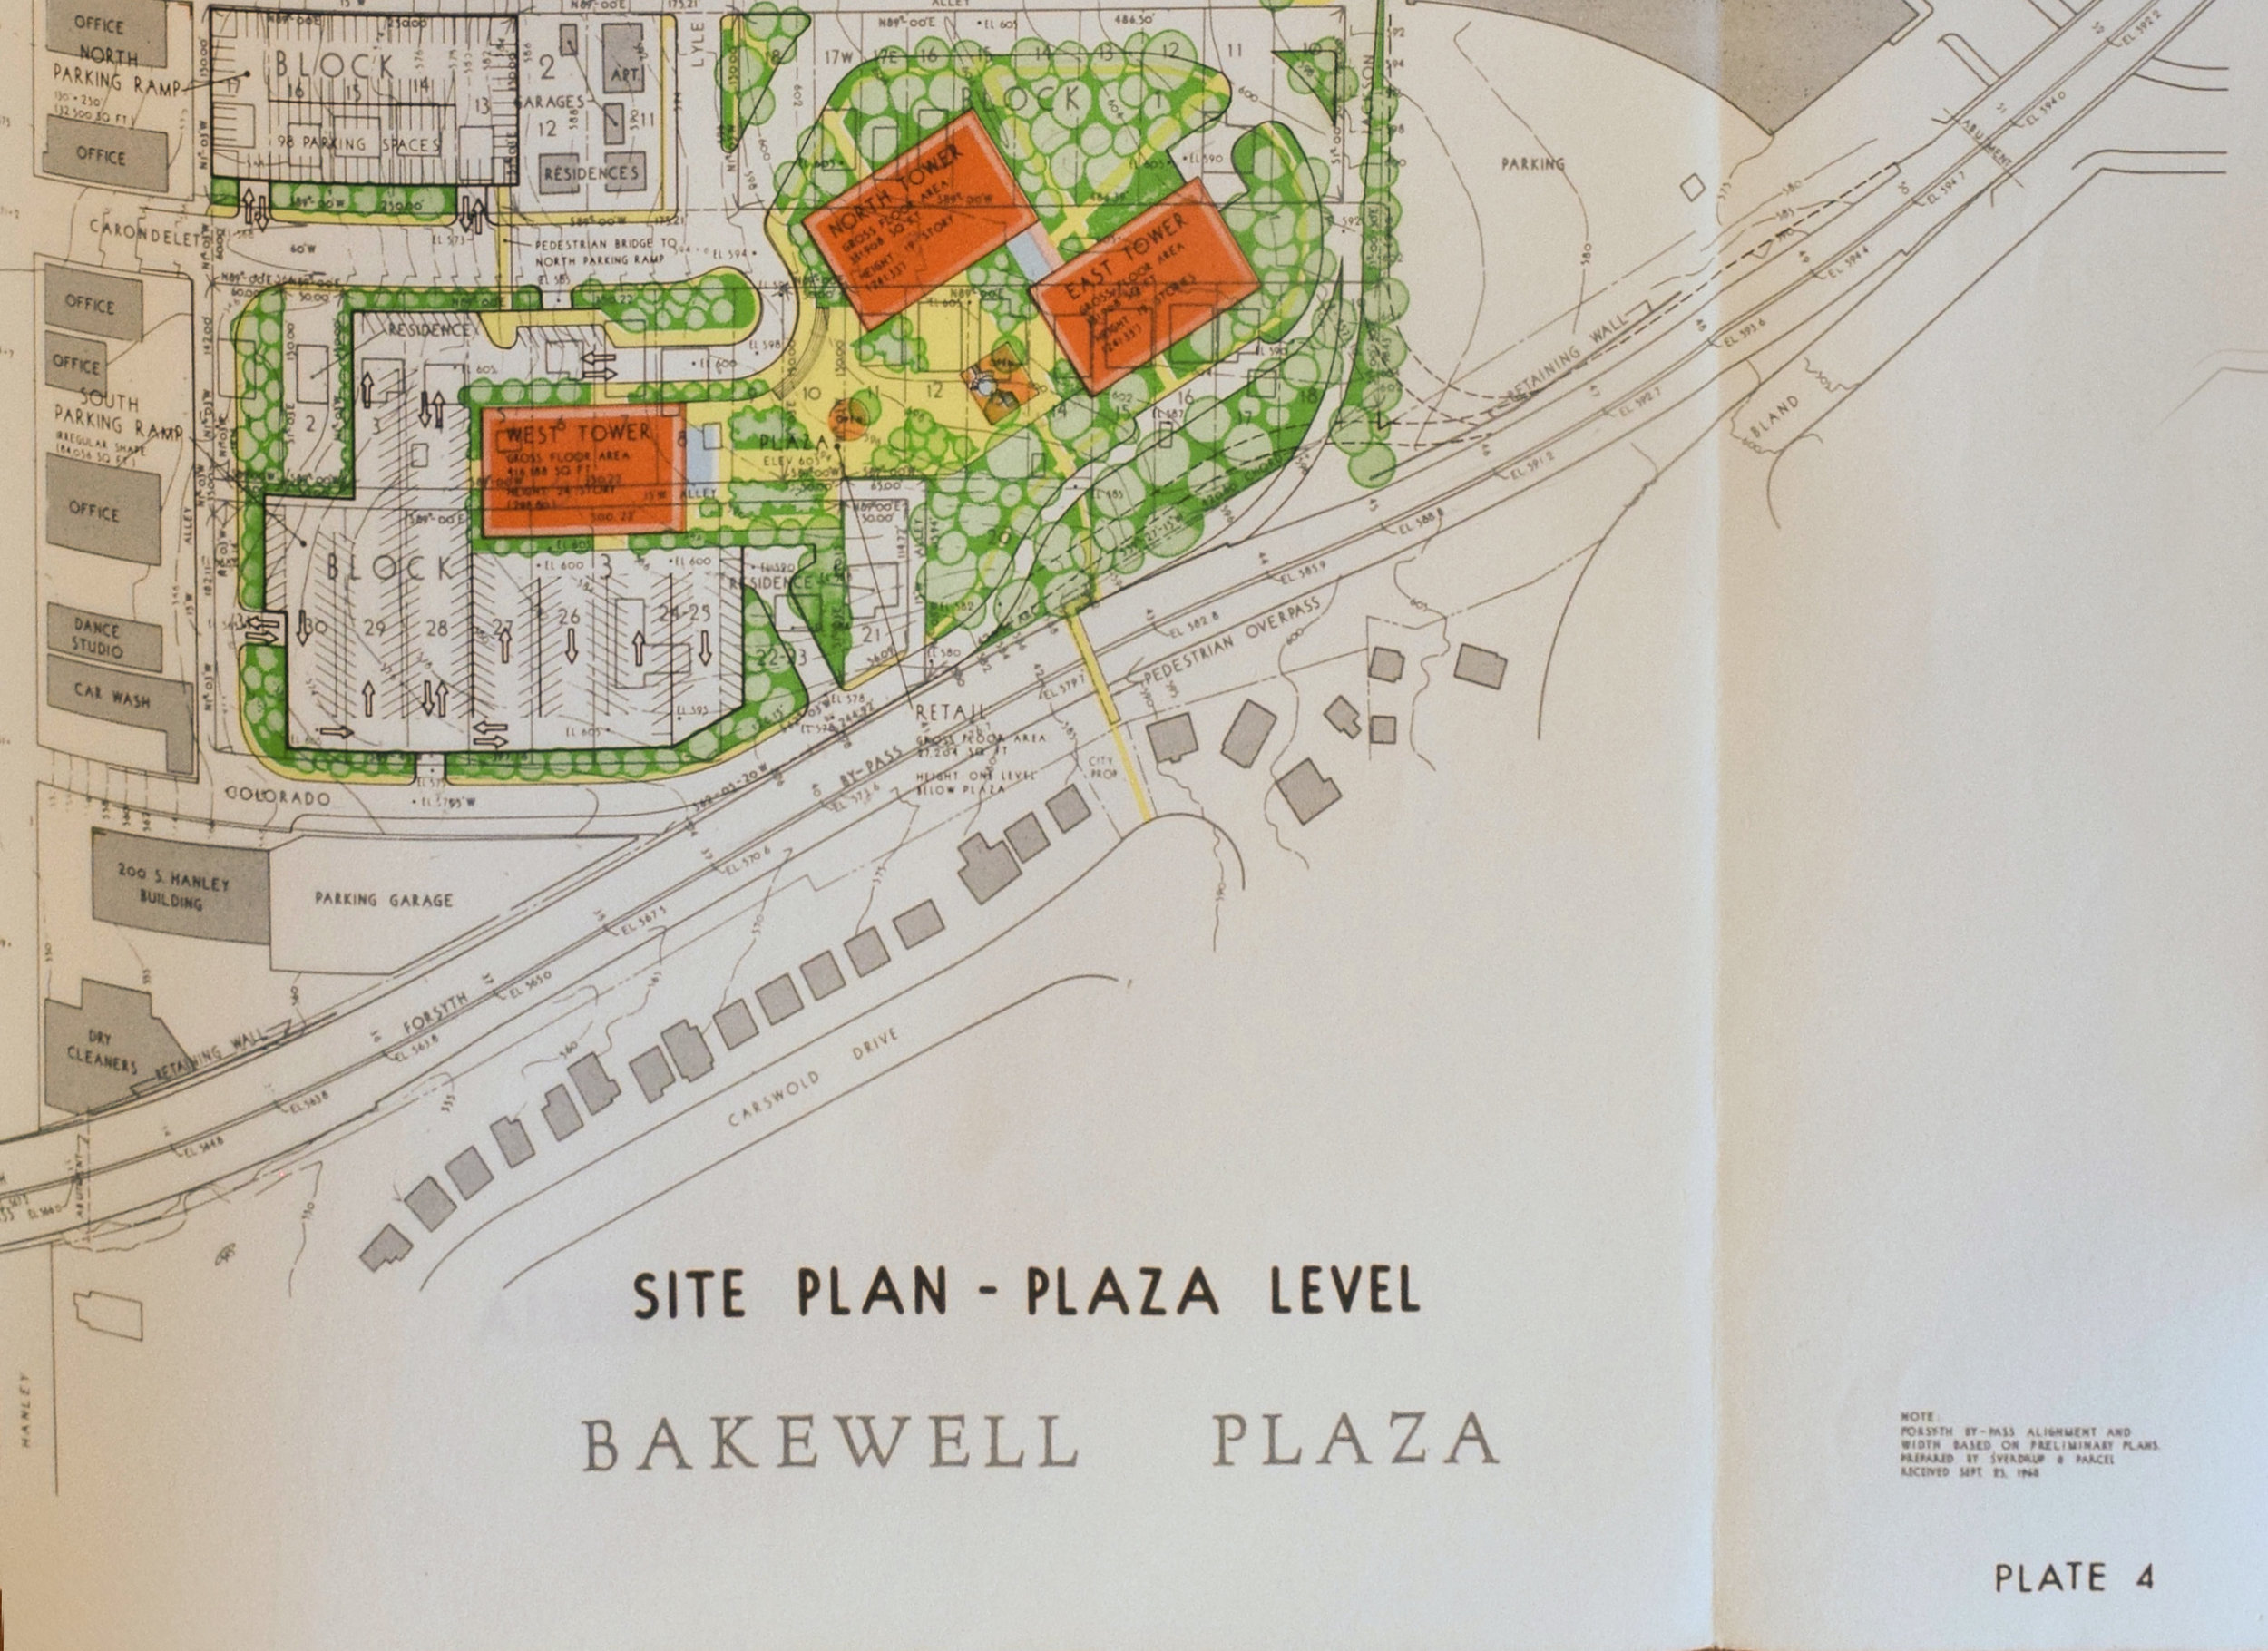 Bakewell Plaza Proposal, 1968,  Courtesy of Washington University Special Collections